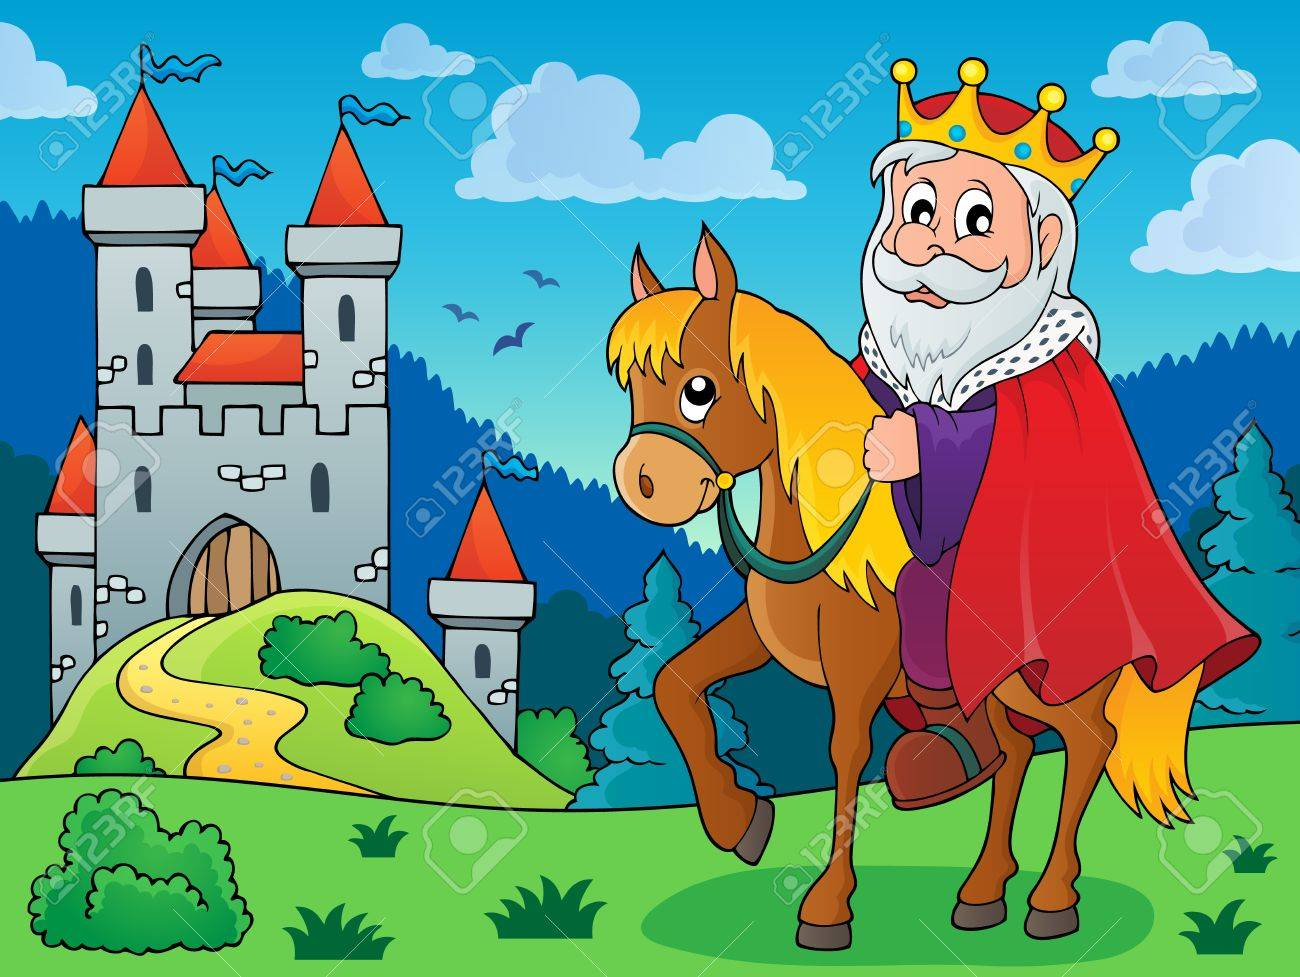 King On Horse Theme Image Royalty Free Cliparts Vectors And Stock Illustration Image 53435497